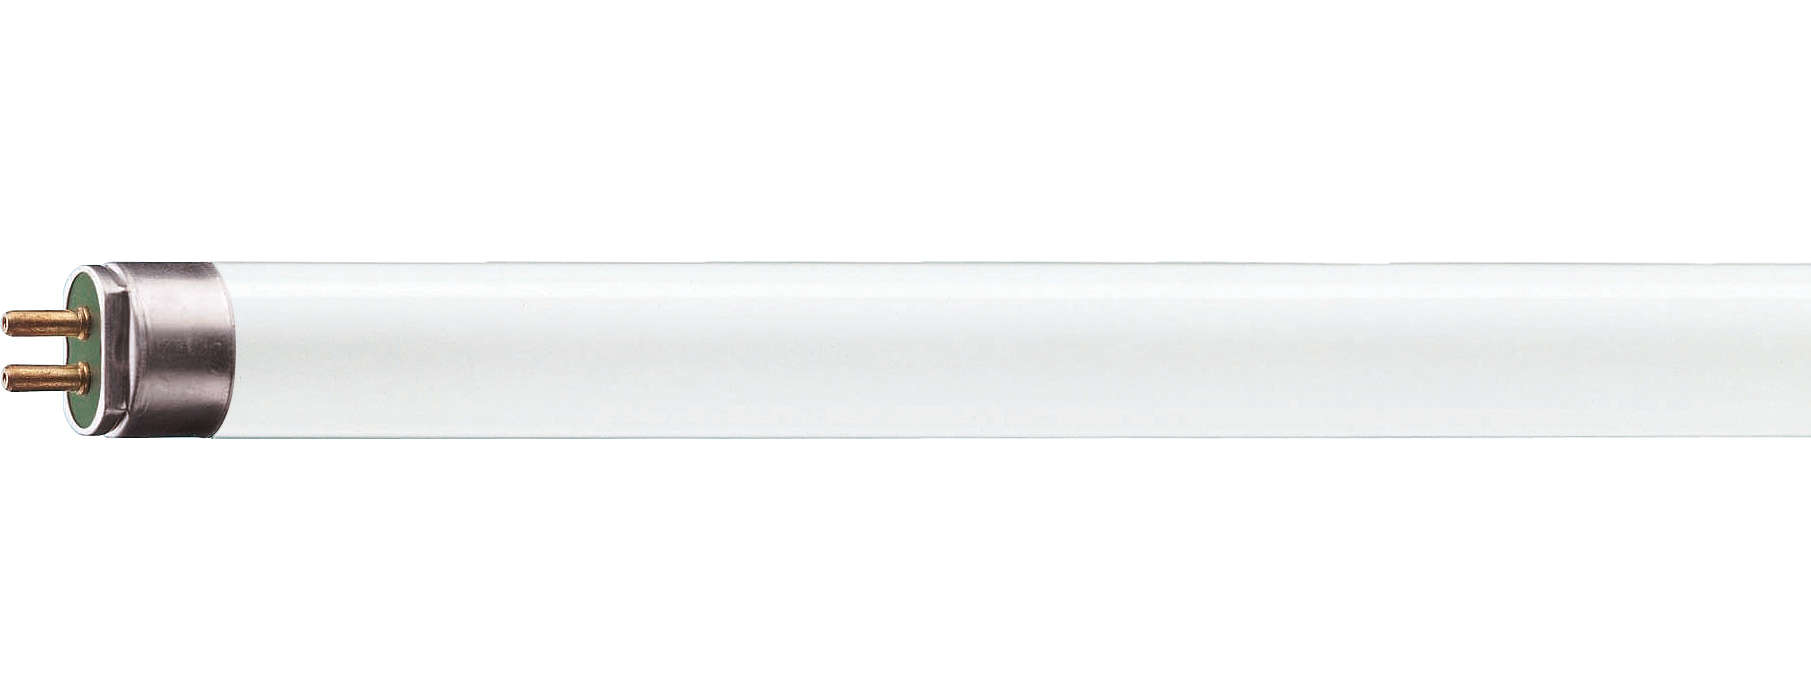 Powerful, ultra-slim lamps